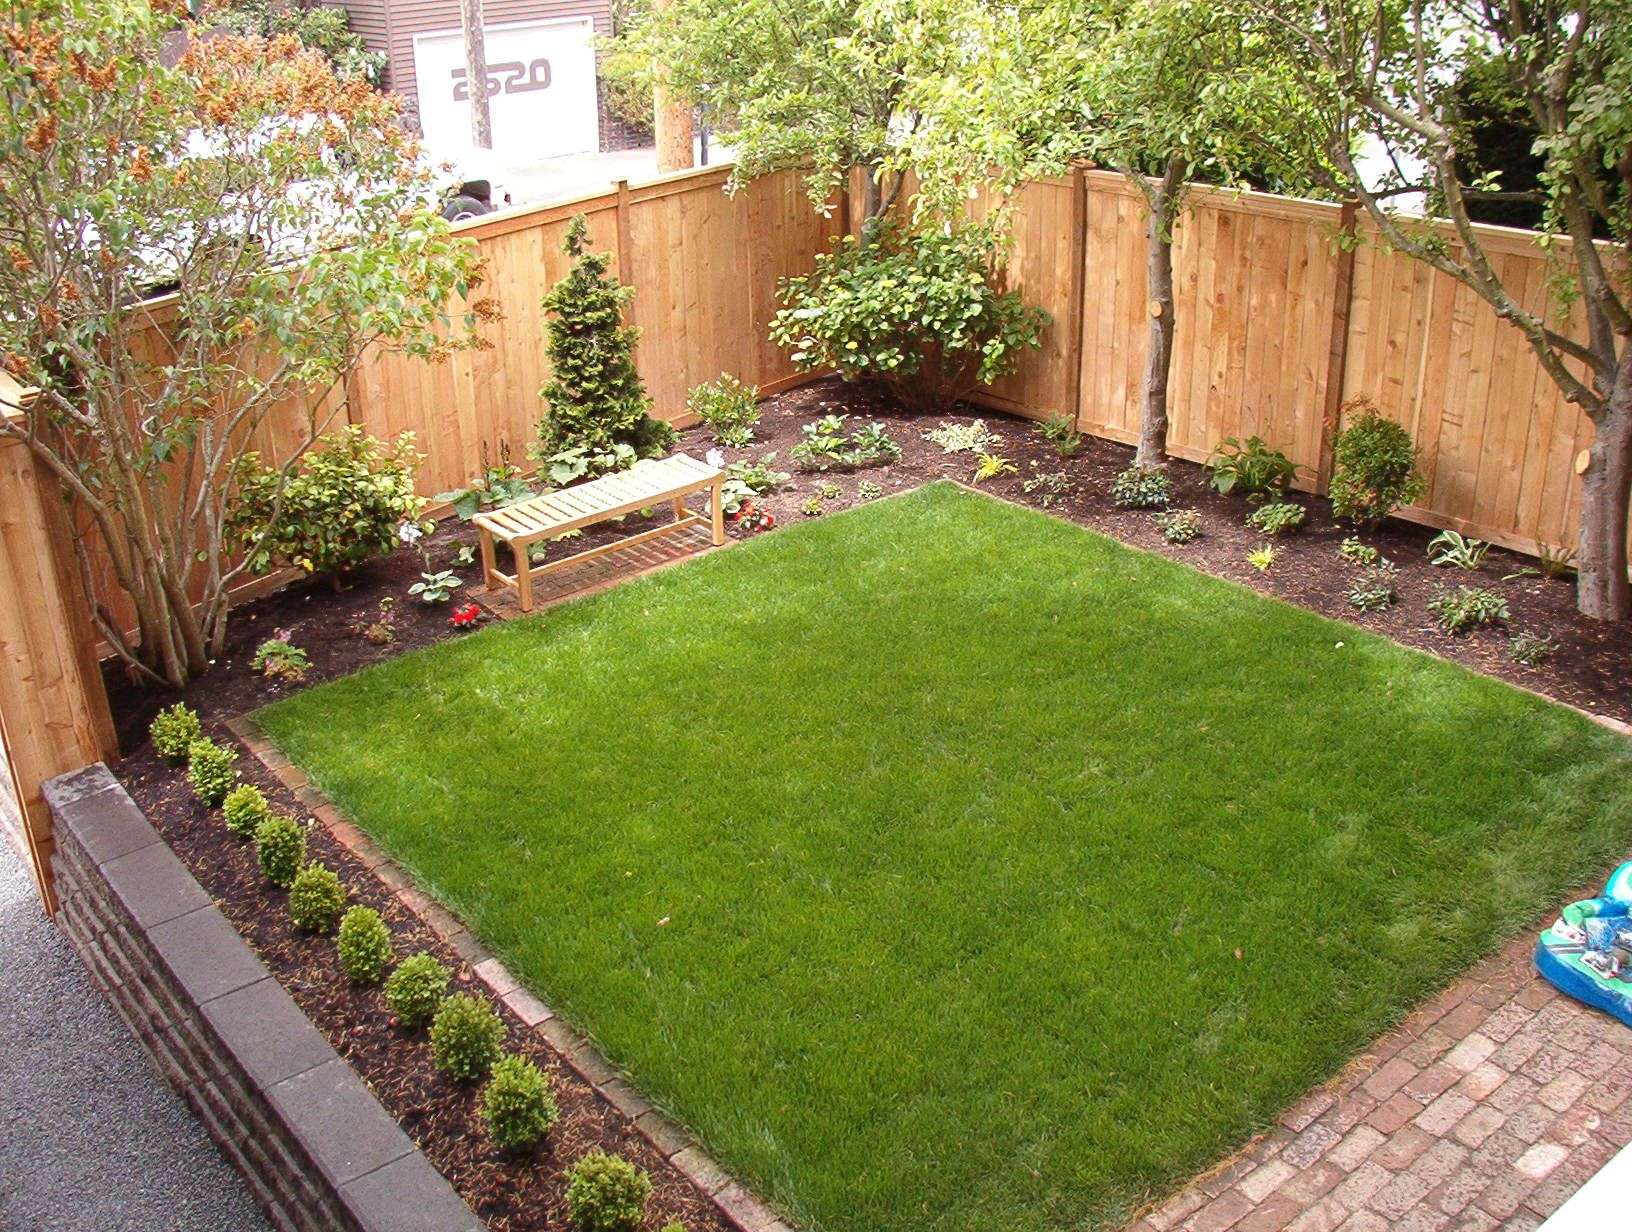 Sod lawn for children to play on landscape ideas for Pics of landscaped backyards